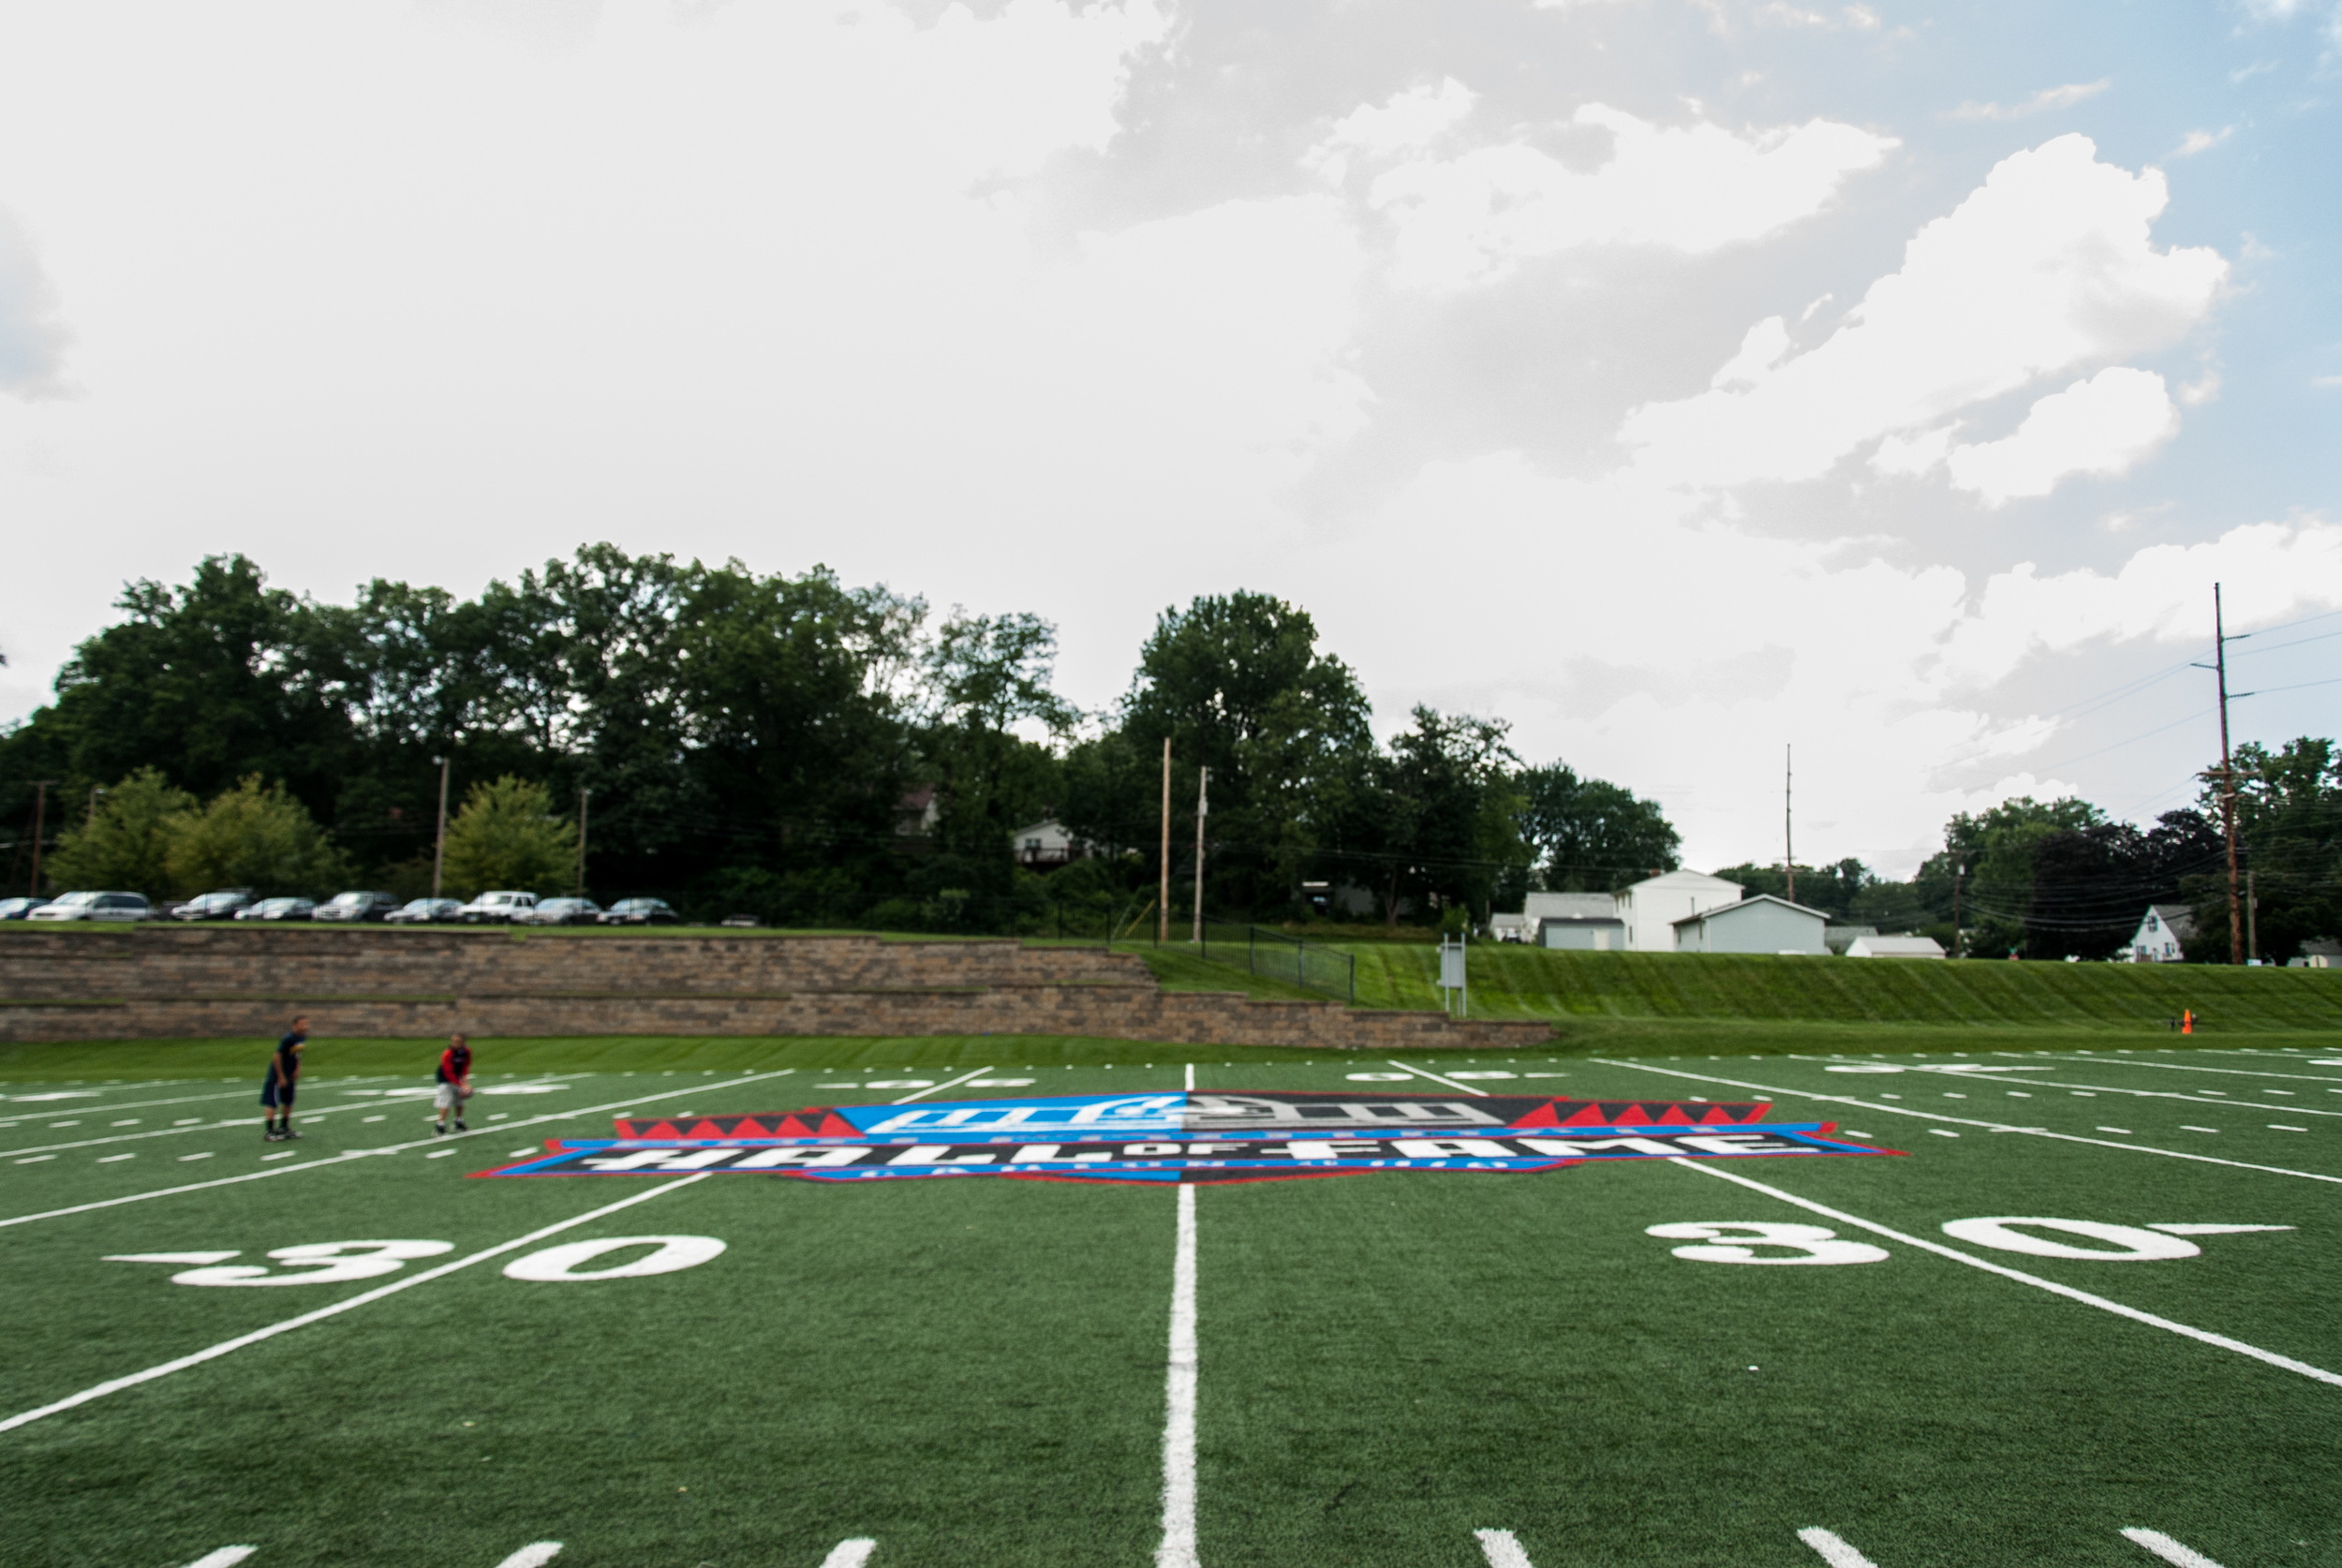 I'd probably be in the Pro Football Hall of Fame, too, if the field was only 70 yards long.